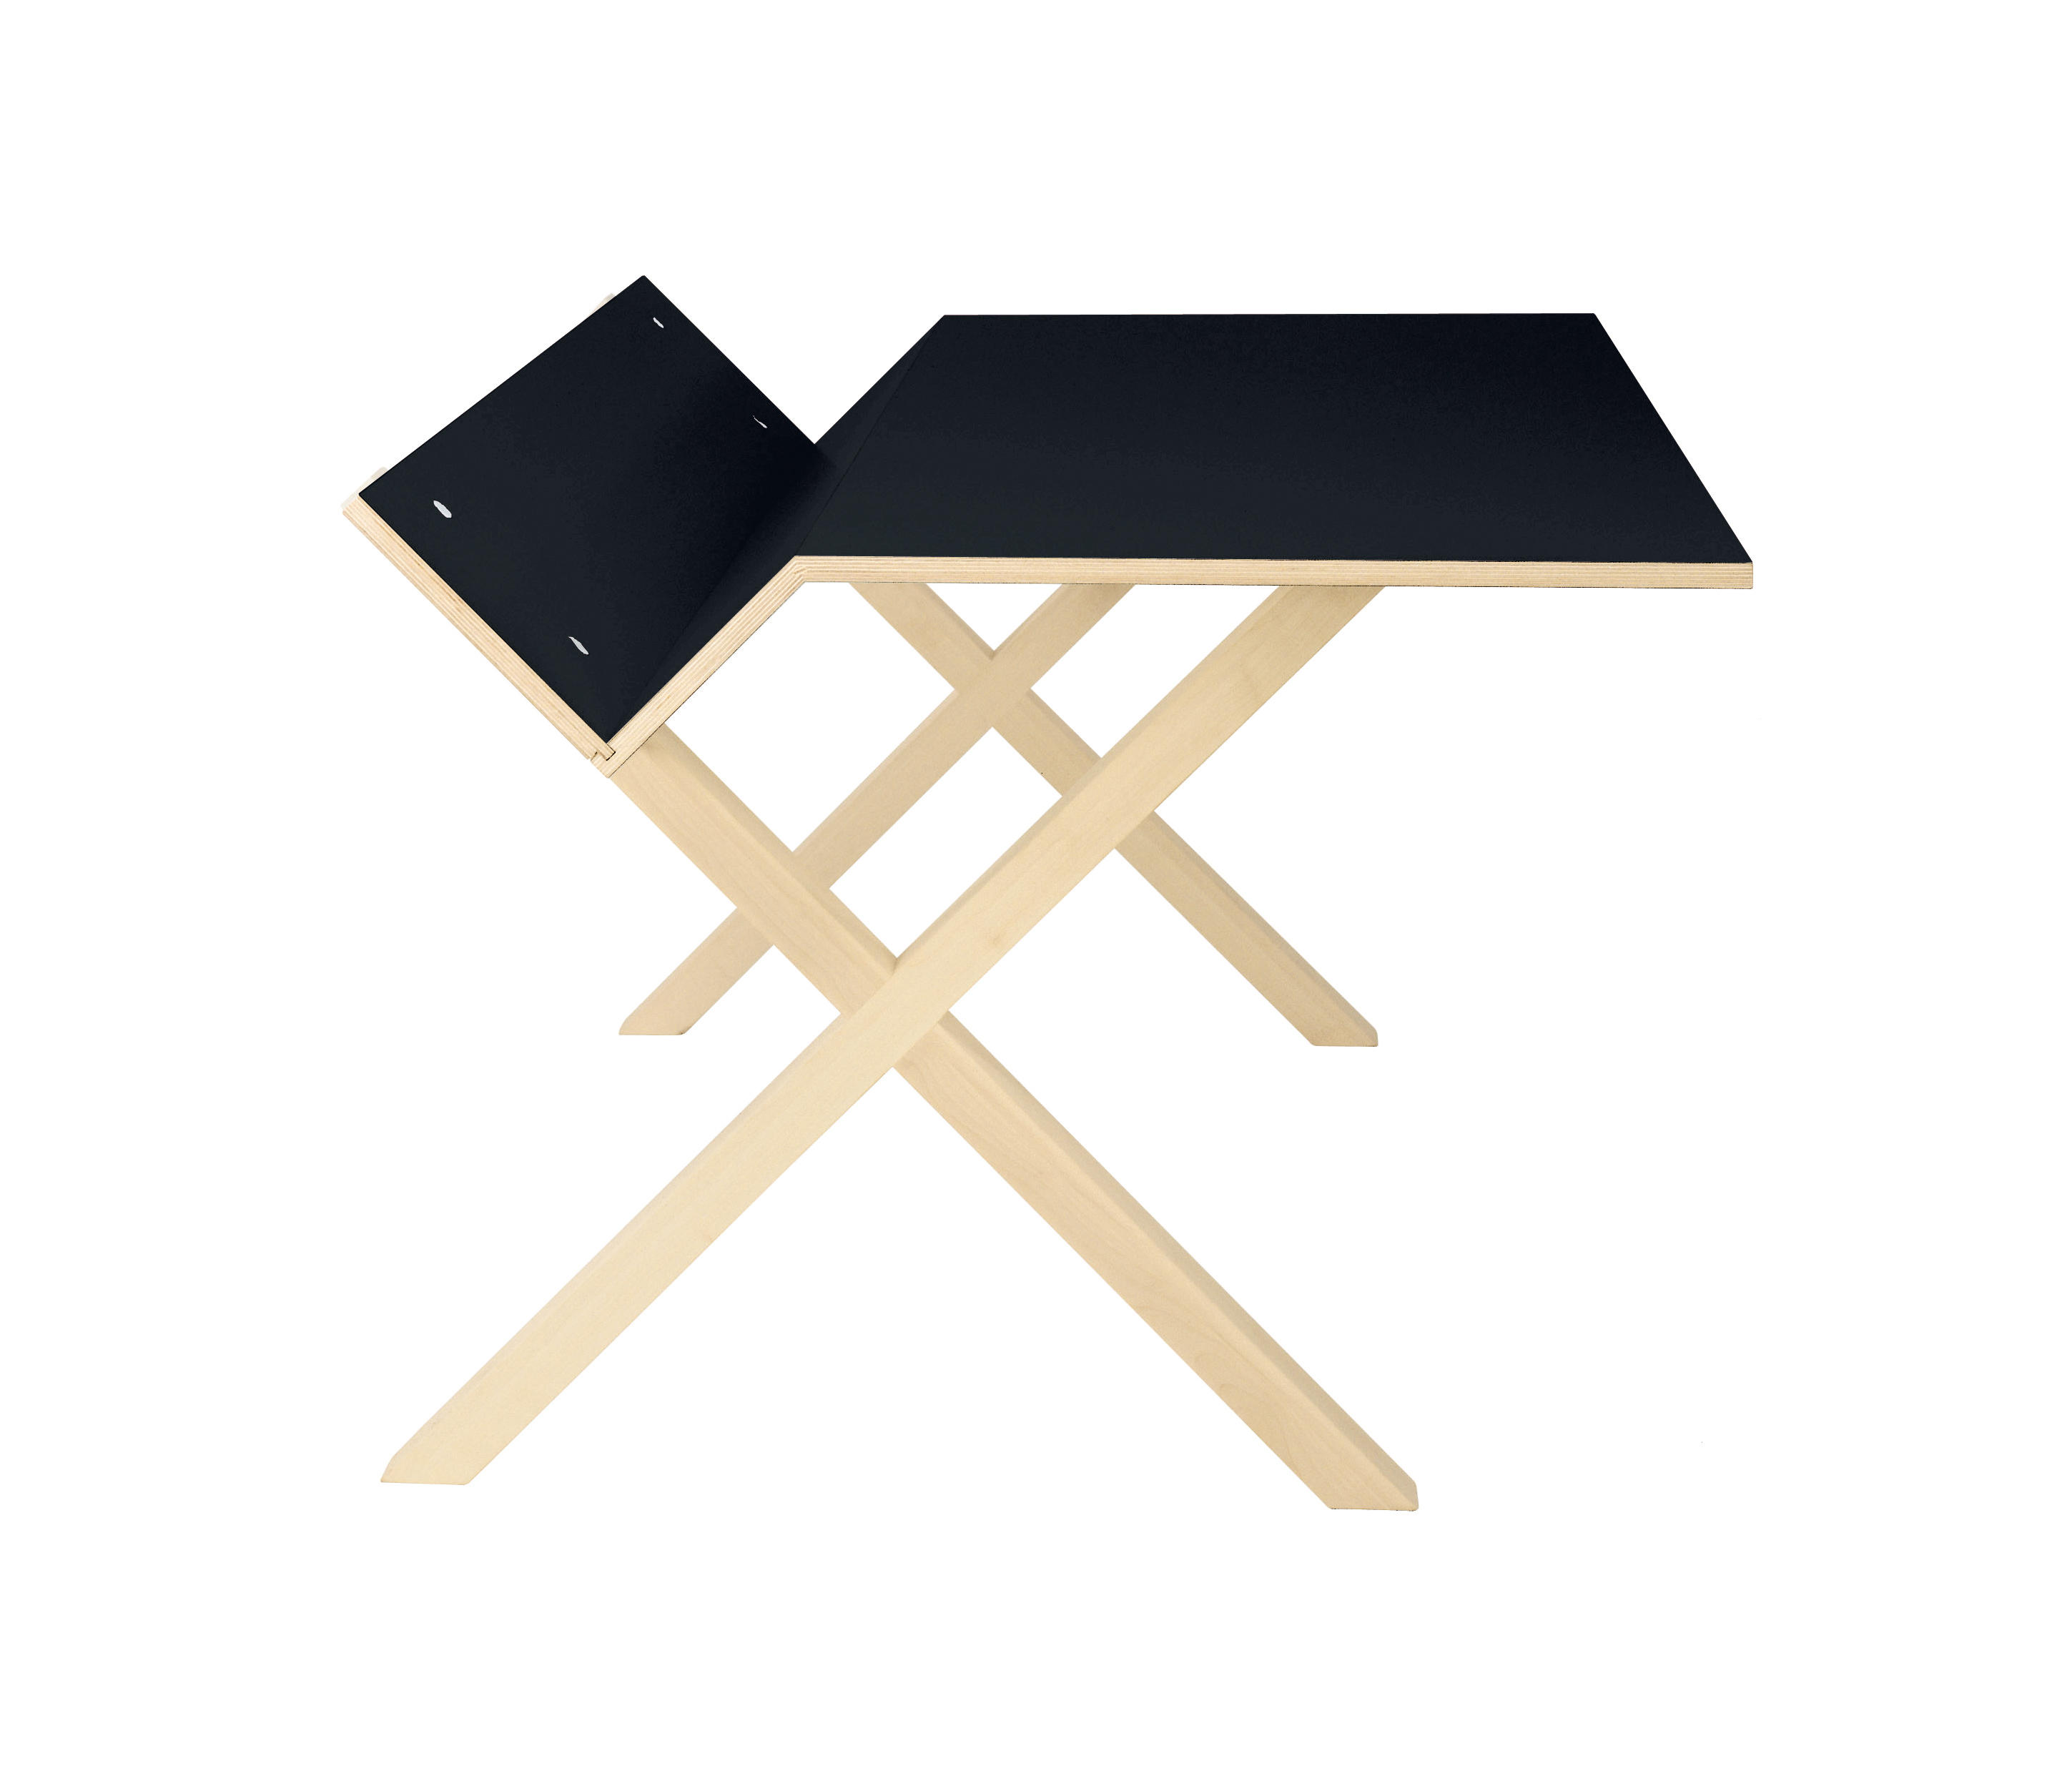 kant sekretaer desks from moormann architonic. Black Bedroom Furniture Sets. Home Design Ideas